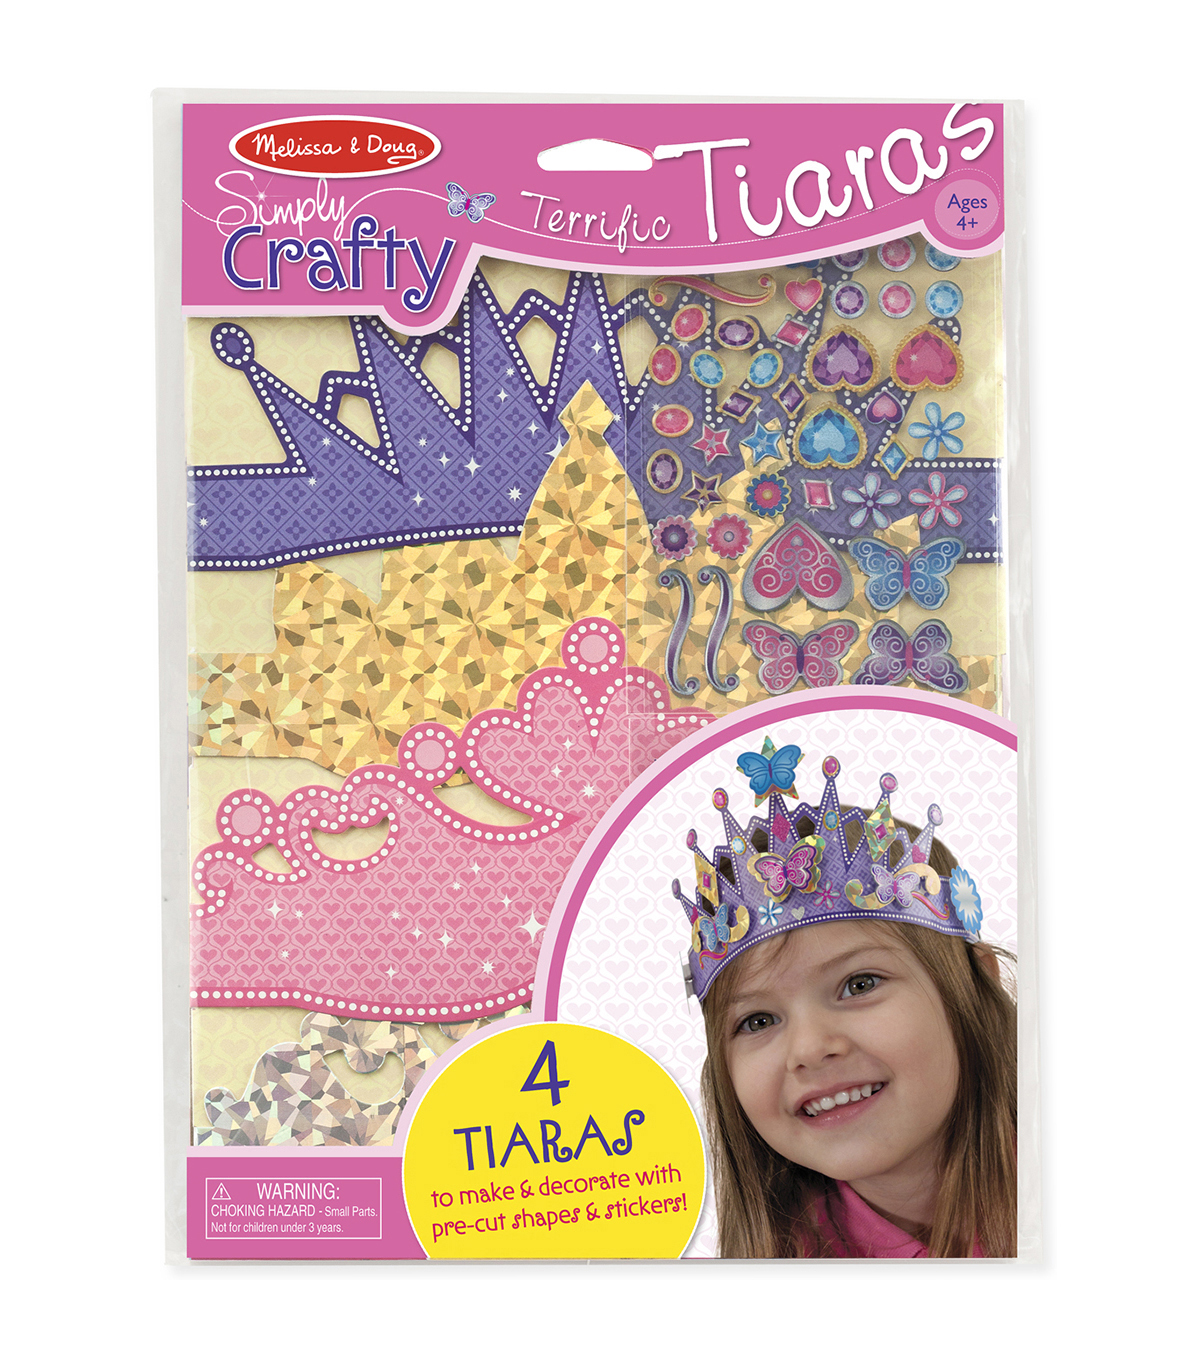 Melissa & Doug Simply Crafty Terrific Tiaras Jewelry Making Kit